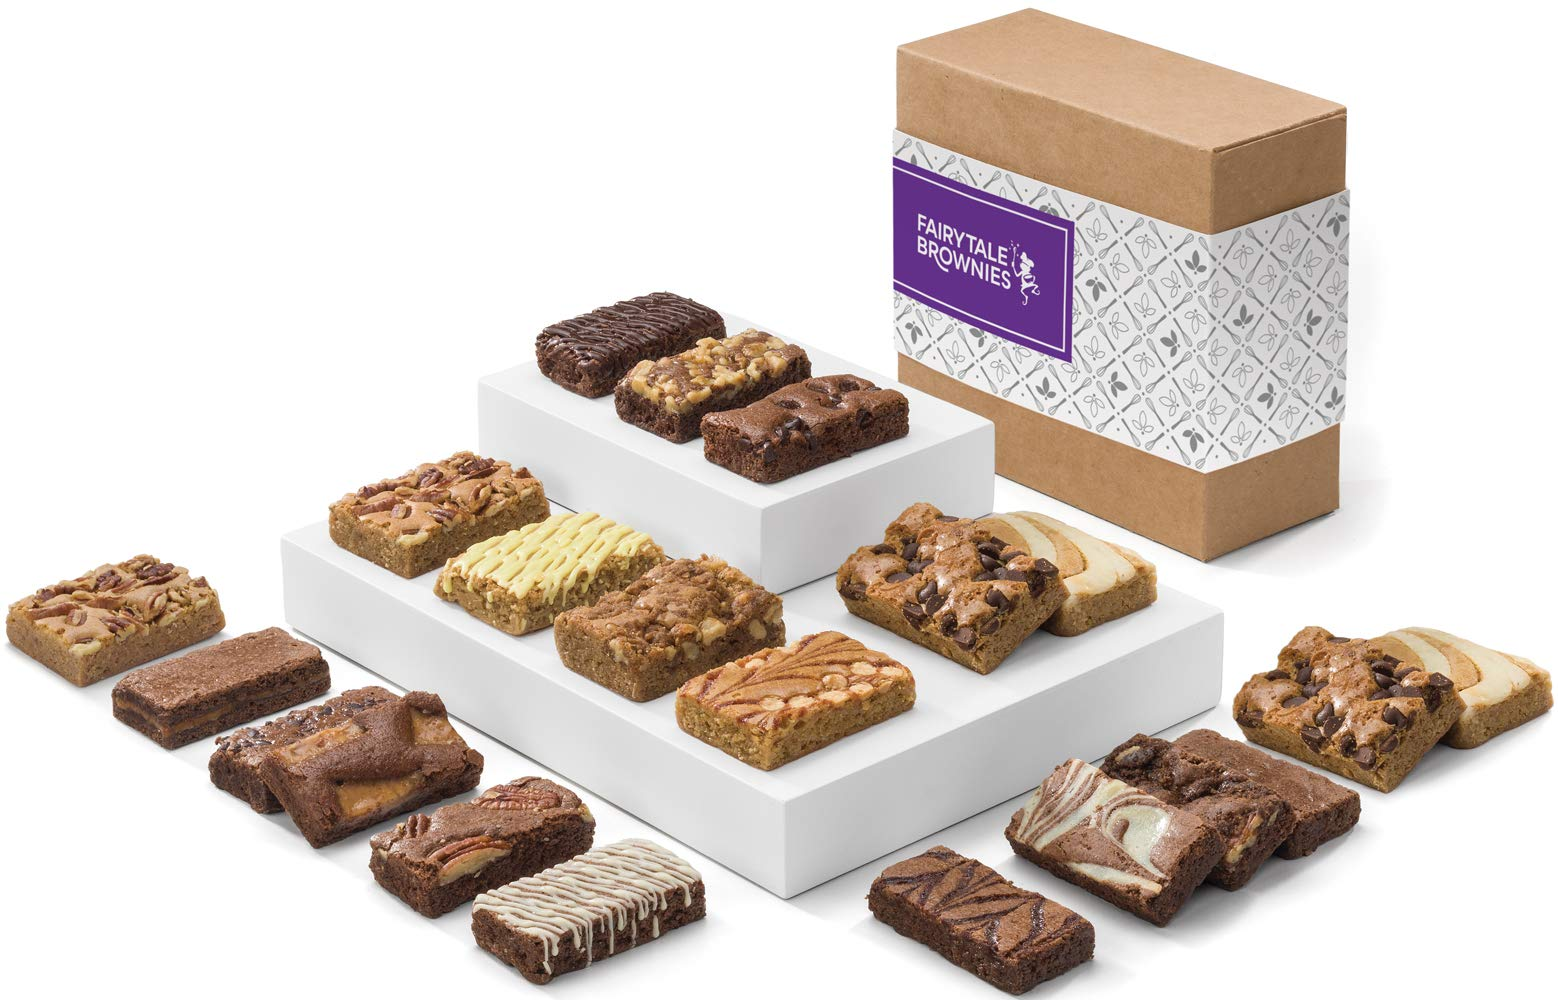 Fairytale Brownies Bar & Sprite Combo Gourmet Chocolate Food Gift Basket - 3 Inch x 1.5 Inch Snack-Size Brownies and 3 Inch x 2 Inch Blondie Bars - 21 Pieces - Item CF382